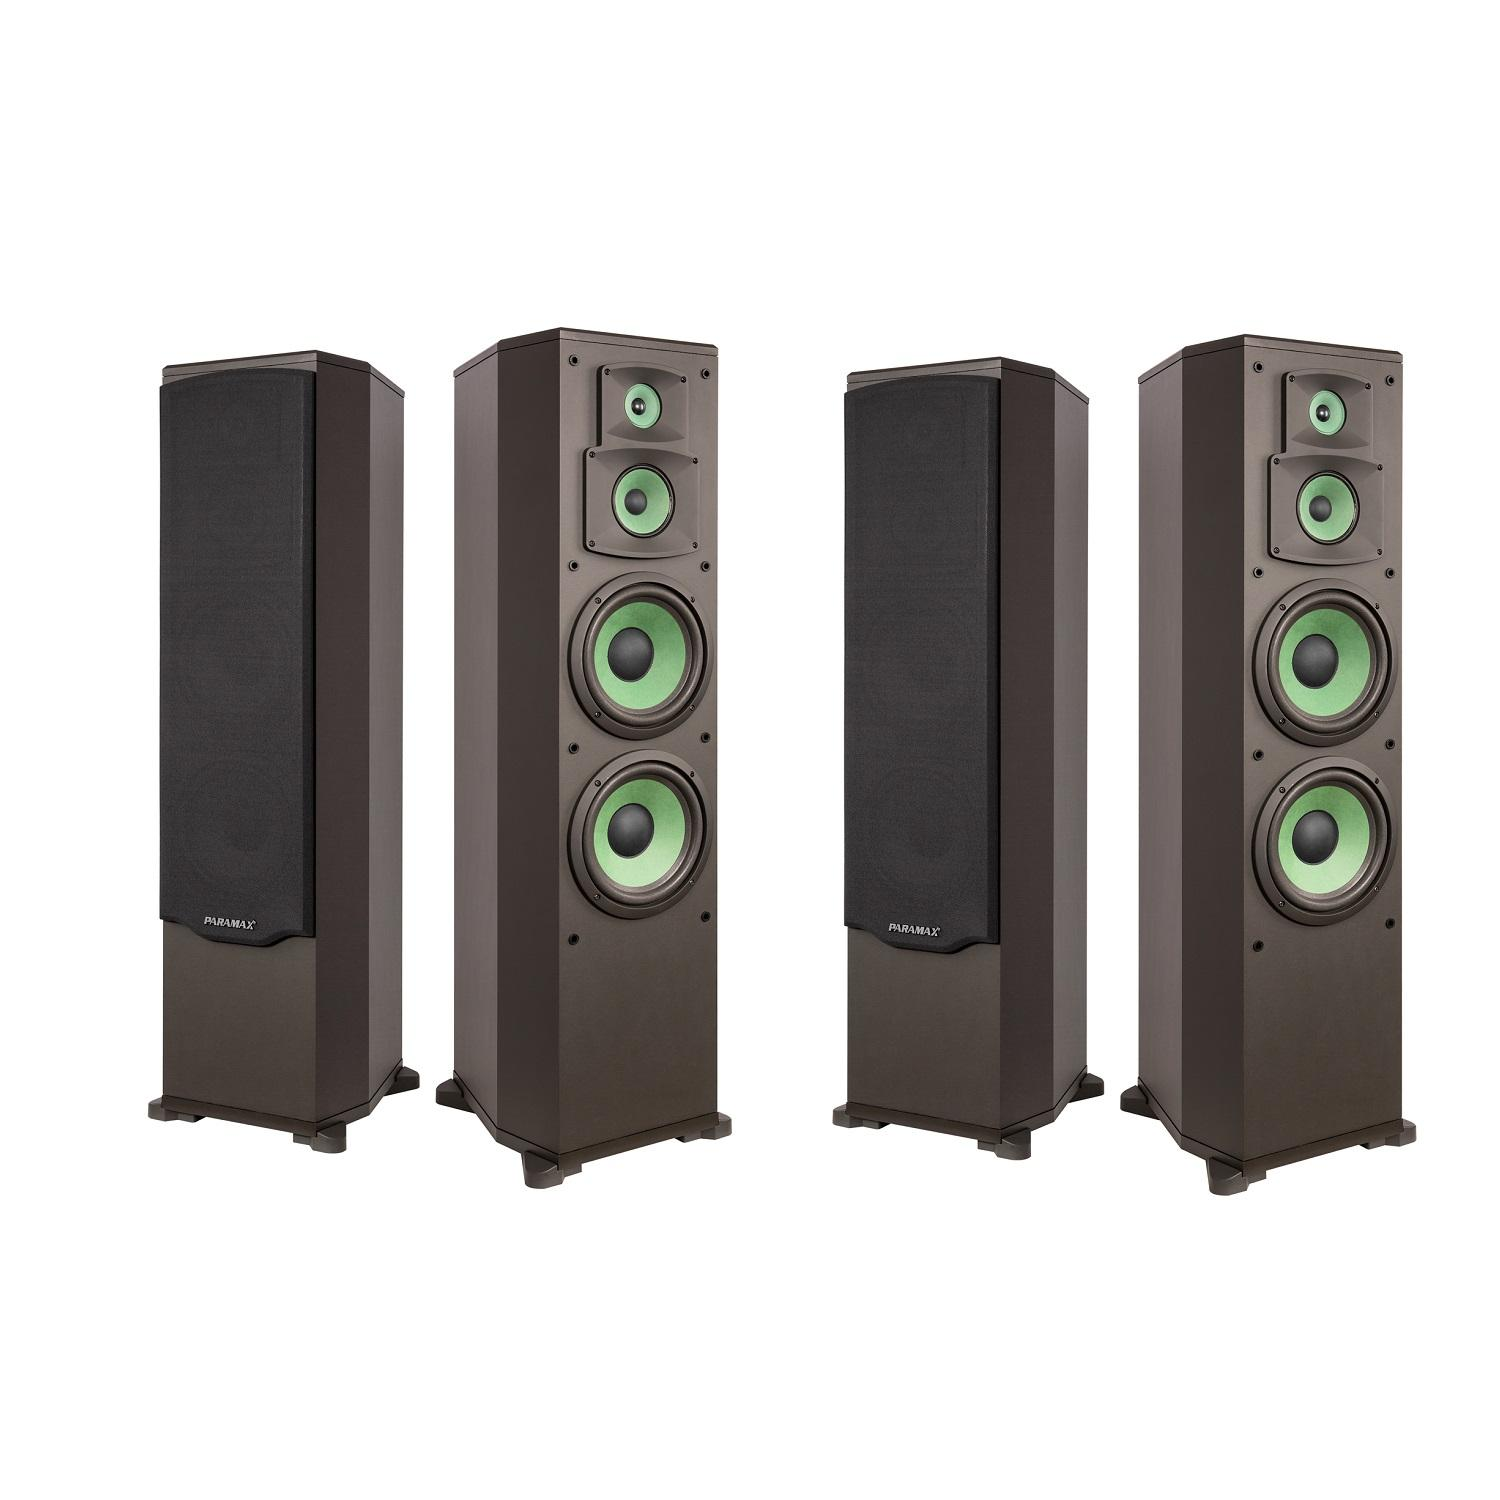 Sound Speaker Stand Name F 1000 With 1 Year Warranty From Viet Nam For Sale